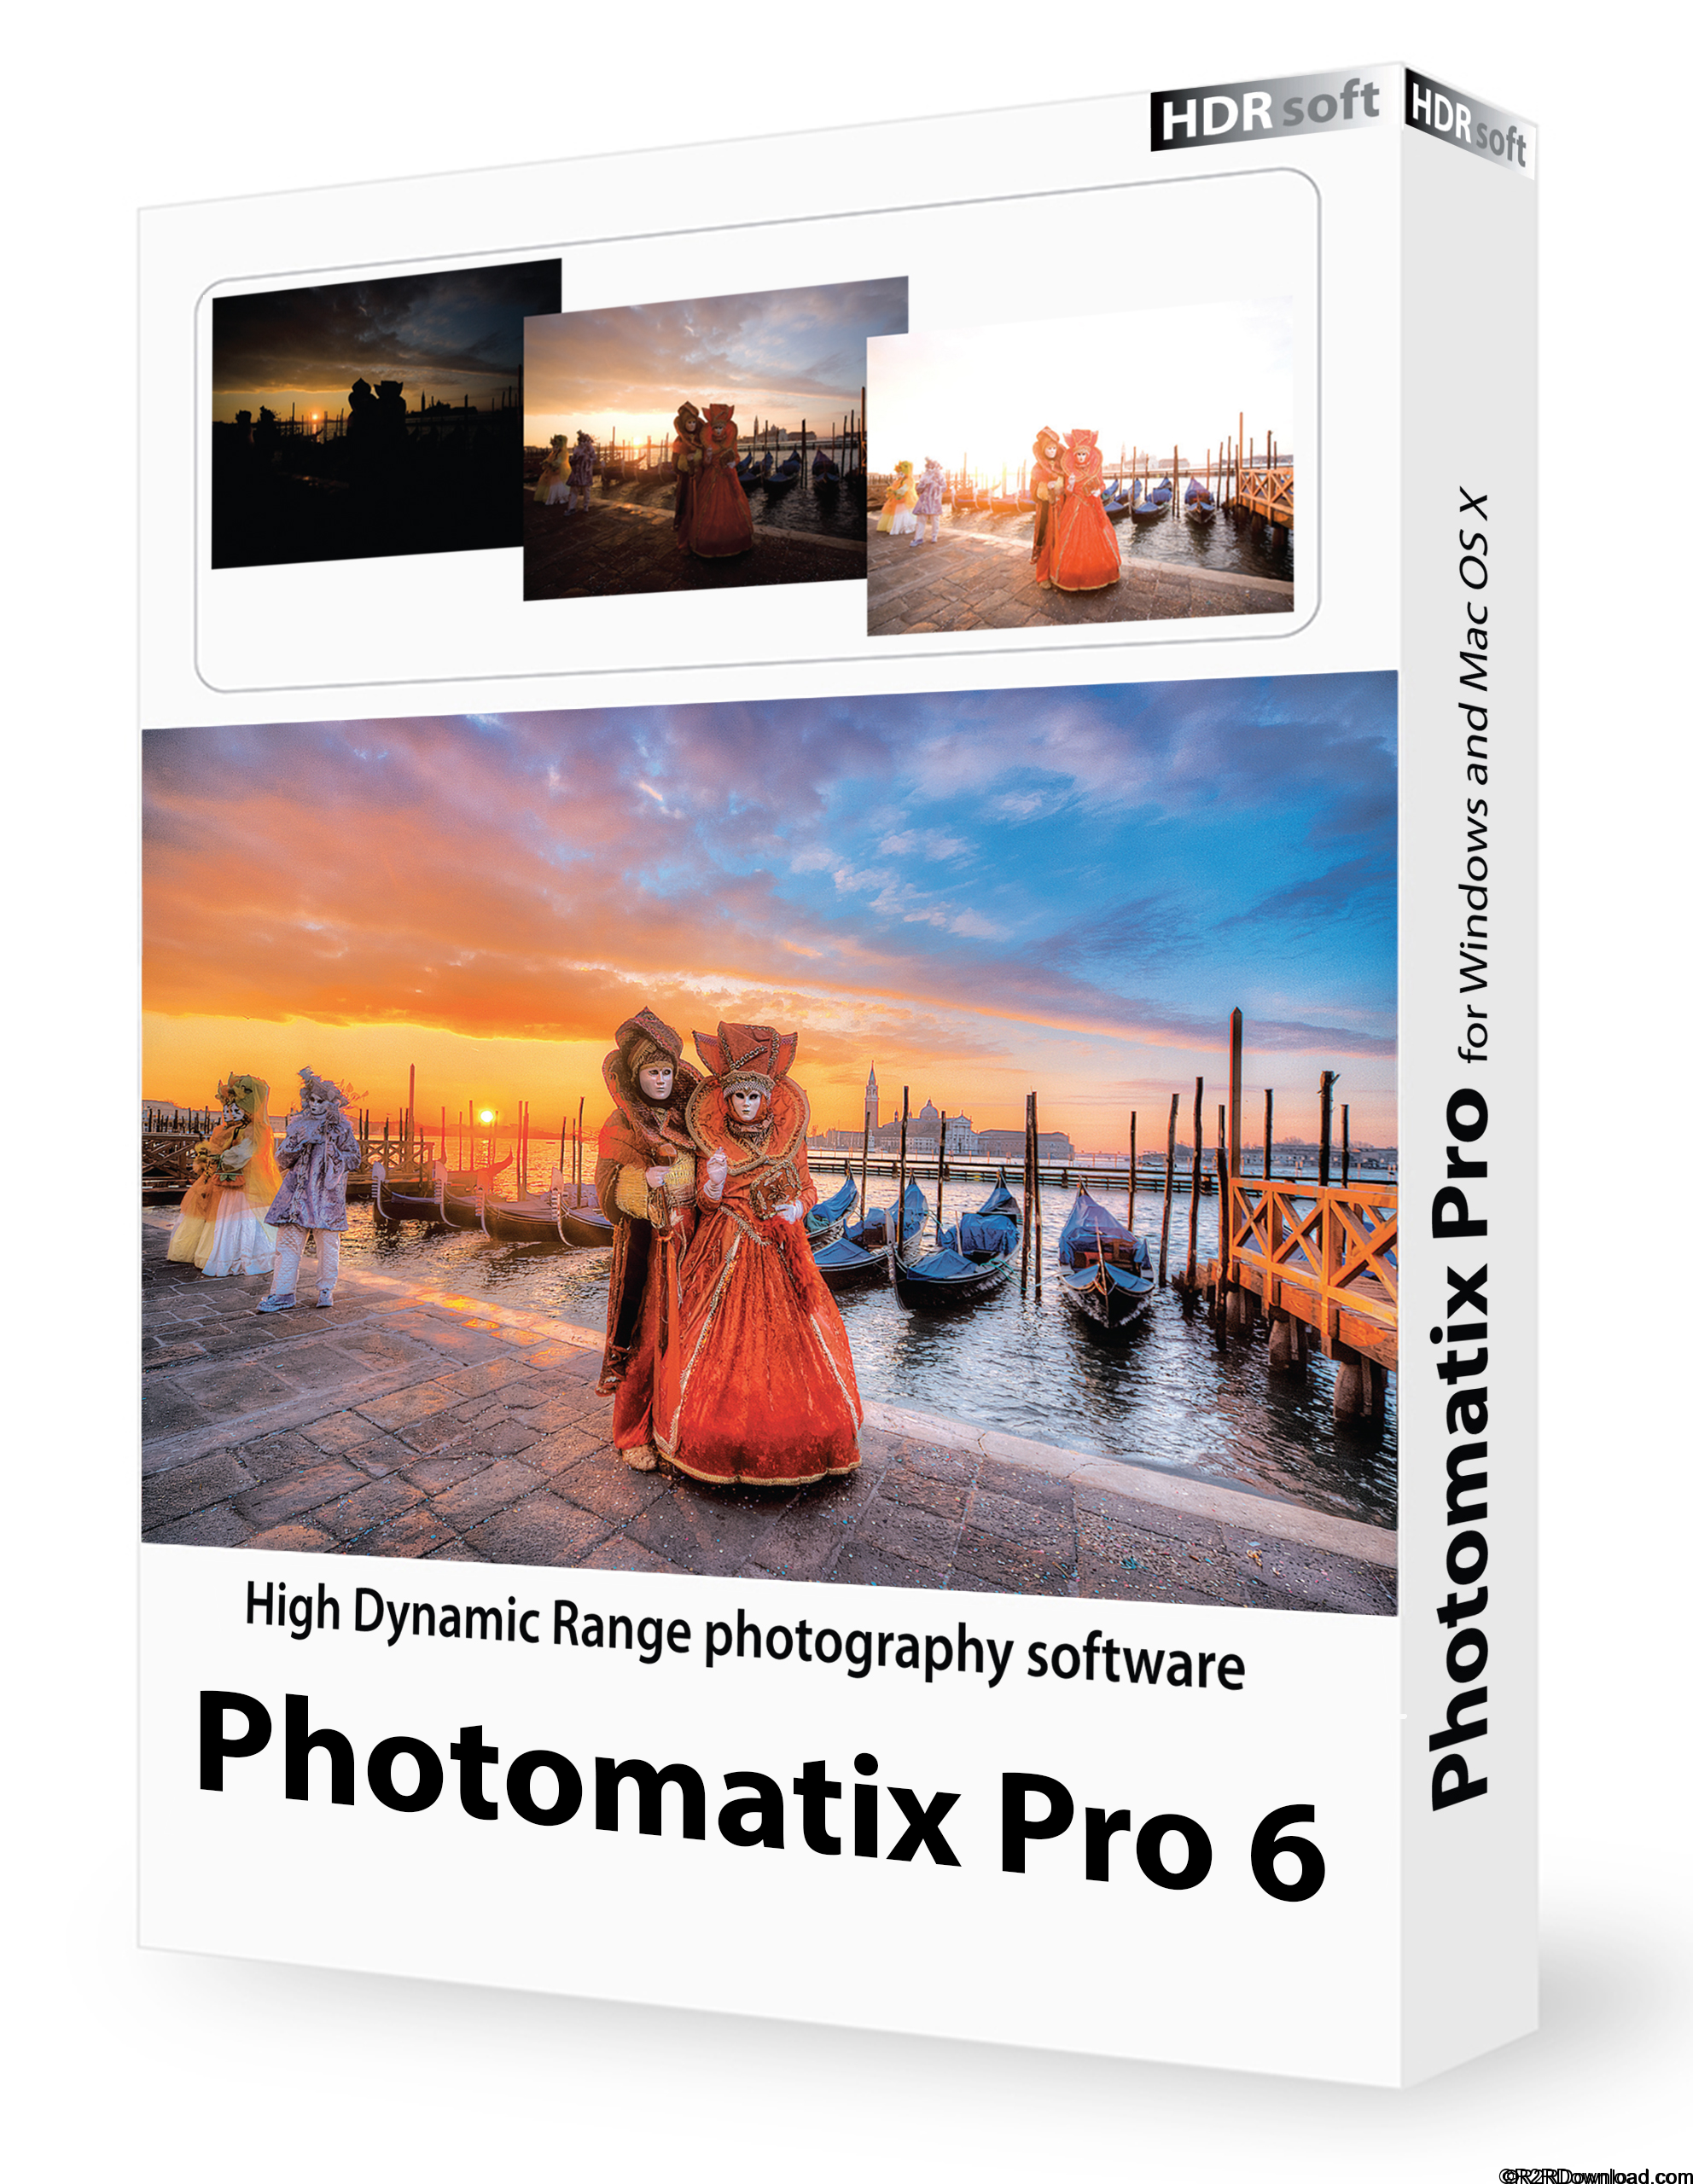 HDRsoft Photomatix Pro 6 Free Download(Mac OS X)